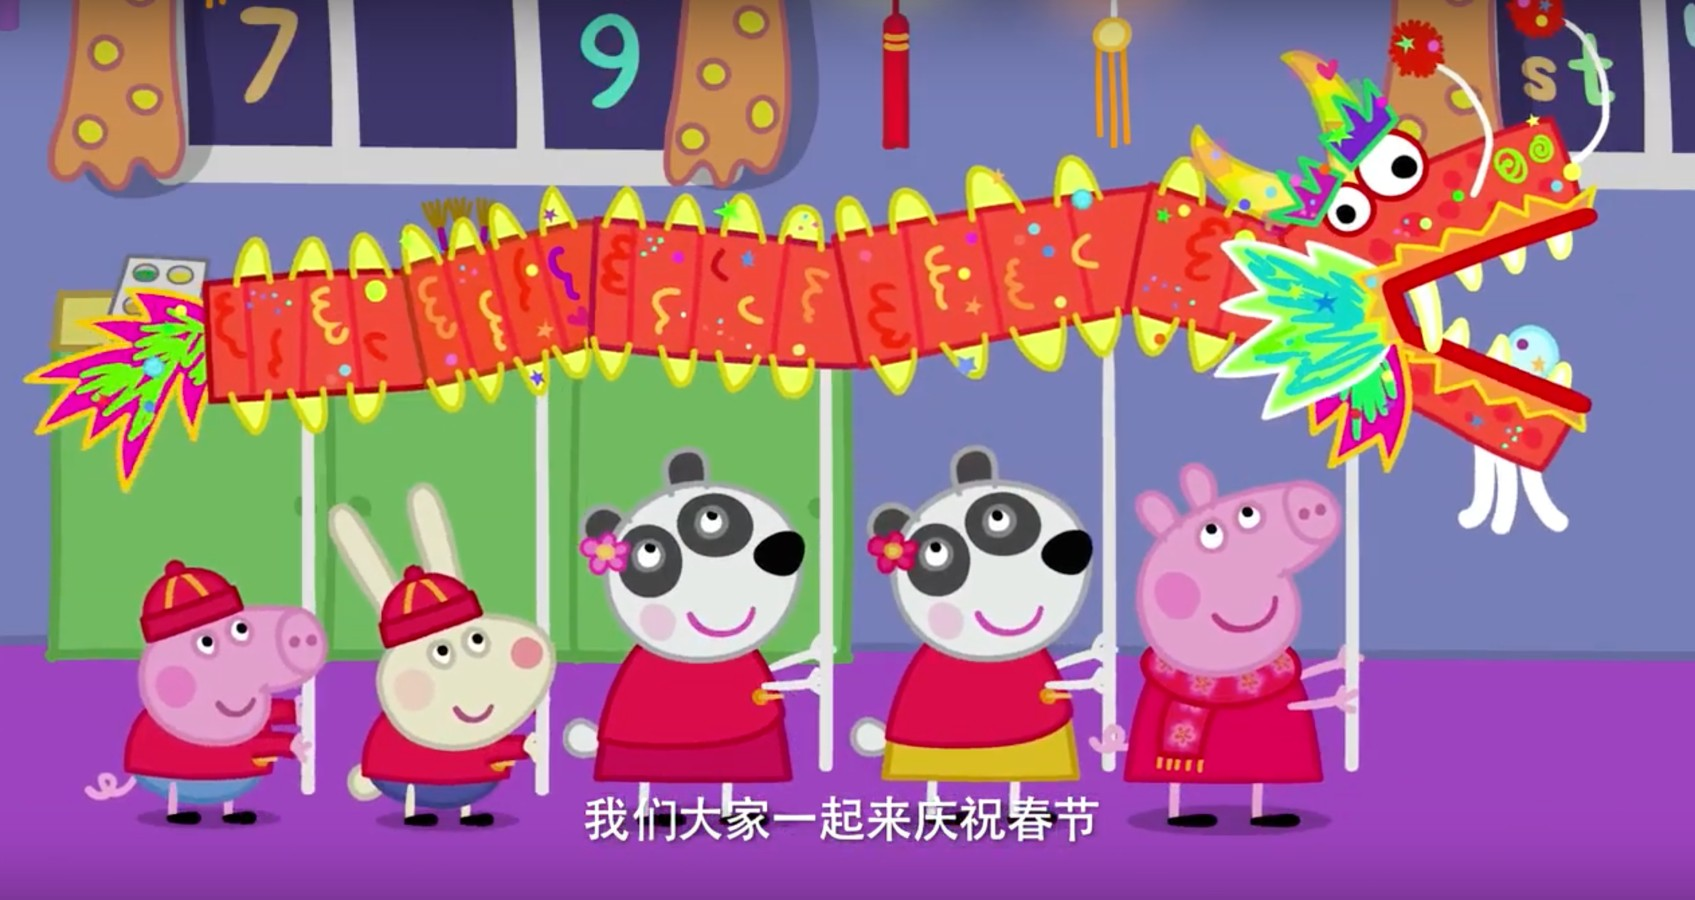 Peppa Pig S Chinese New Year Trailer Charms Its Way Through China